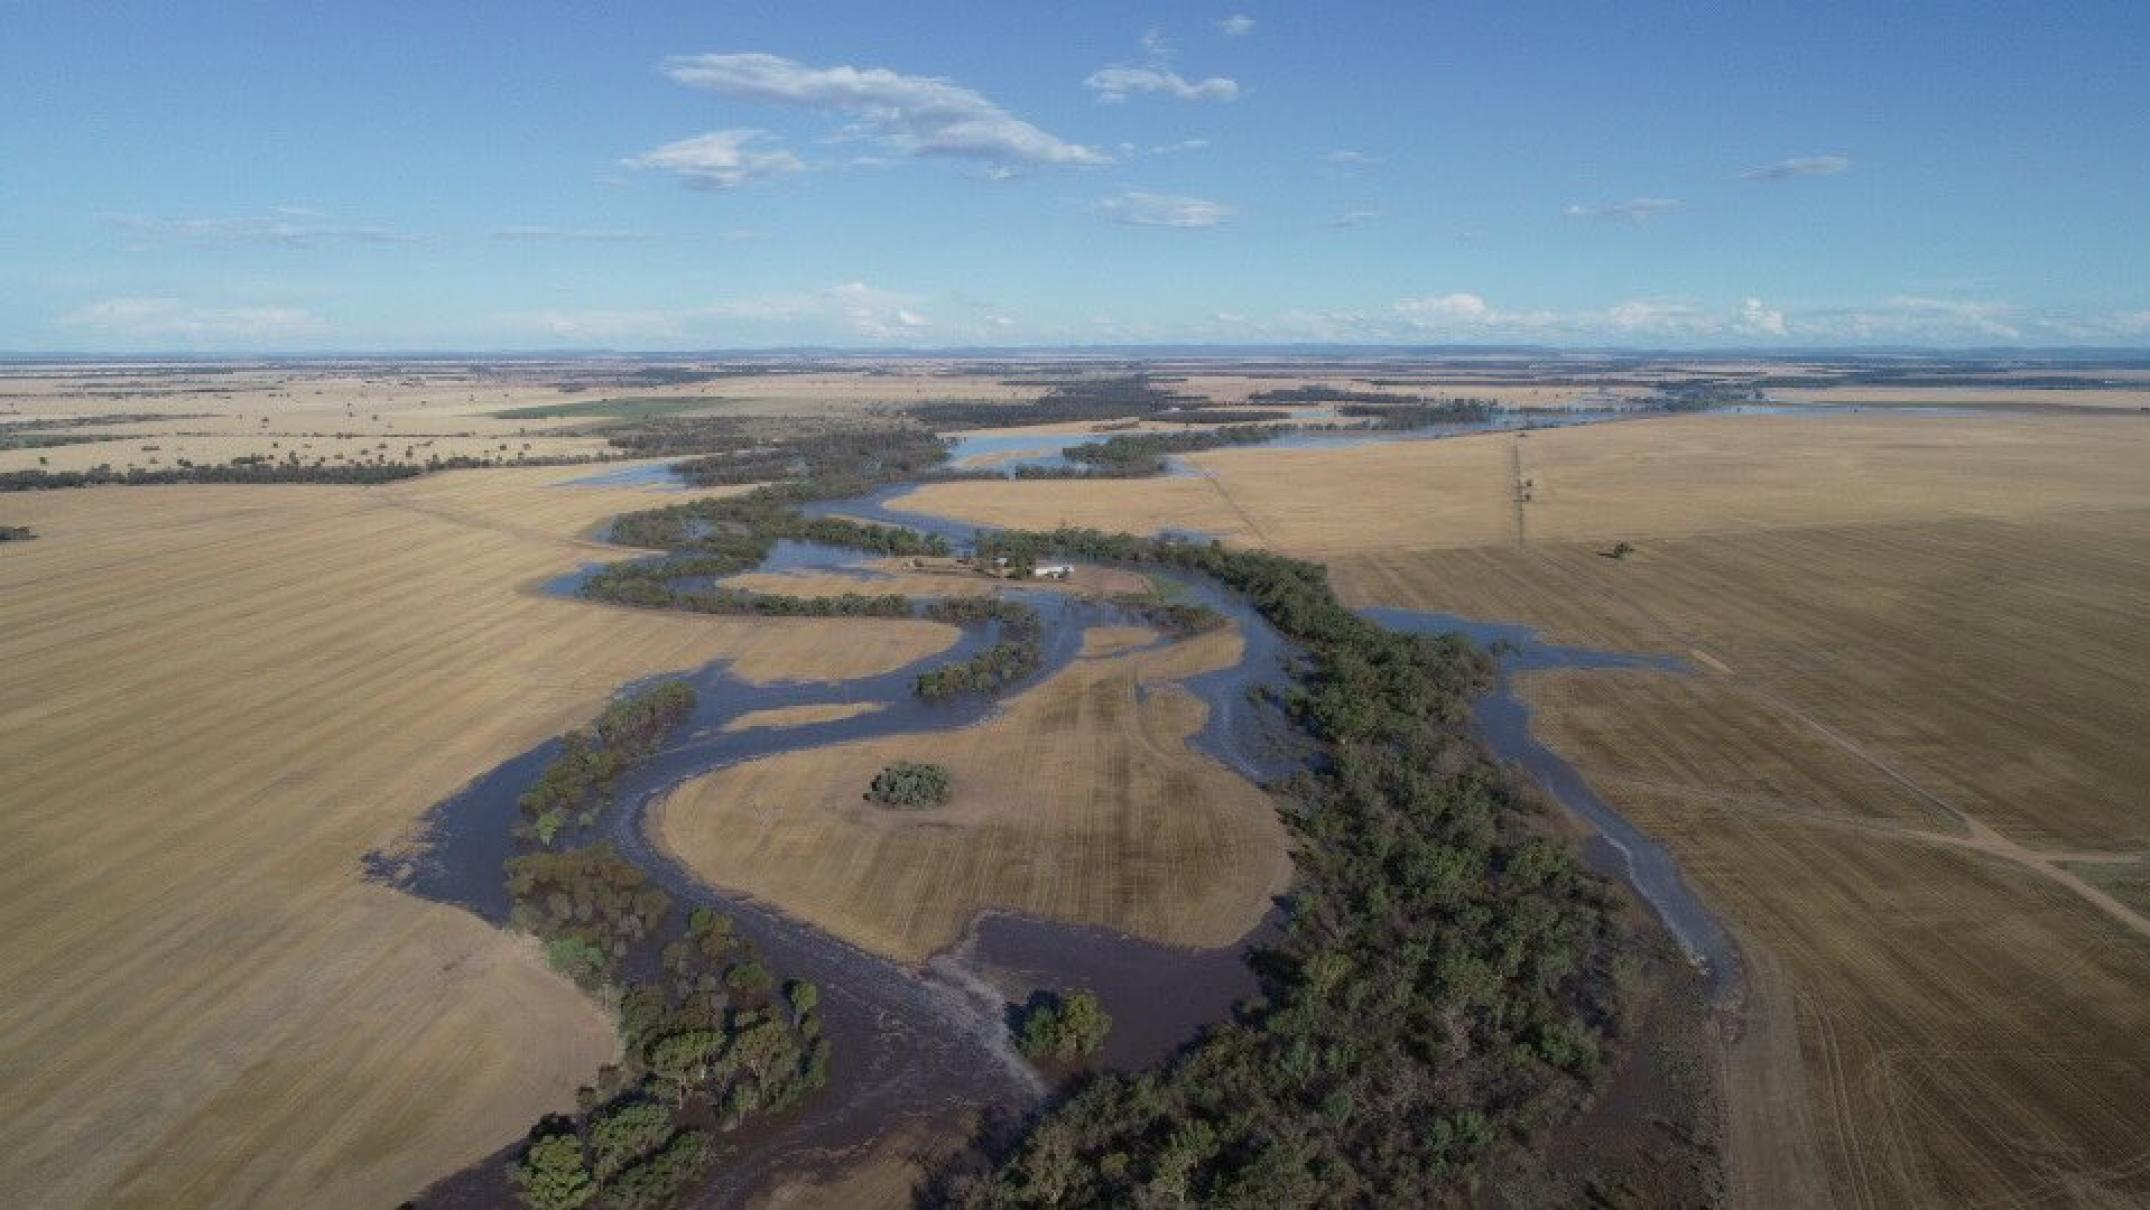 Floodwater coming, but irrigators would possibly per chance per chance furthermore merely no longer be in a position to harvest it legally